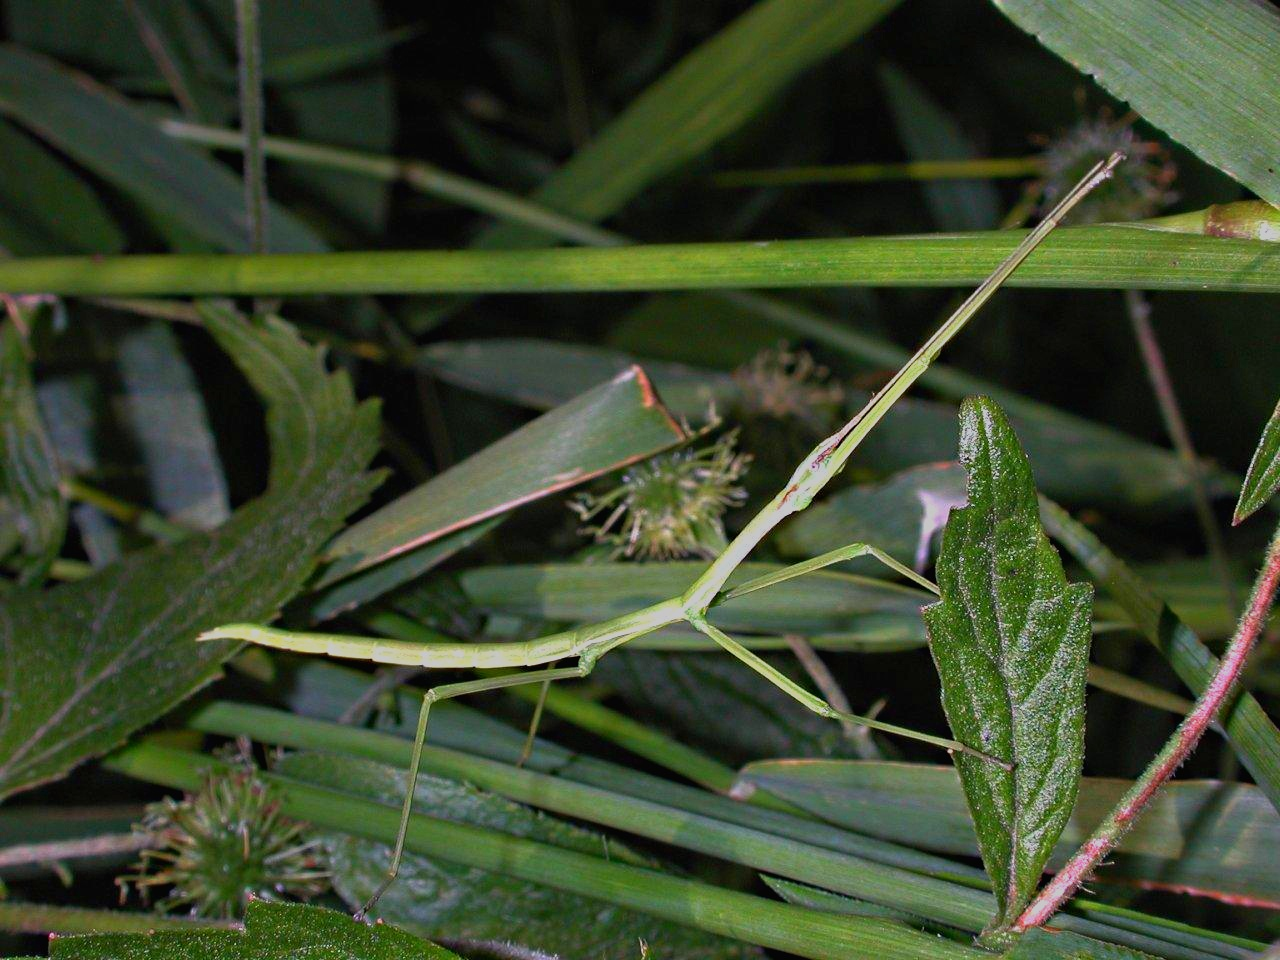 Stick Insect In Woods (1) by Thomas Peace 2013